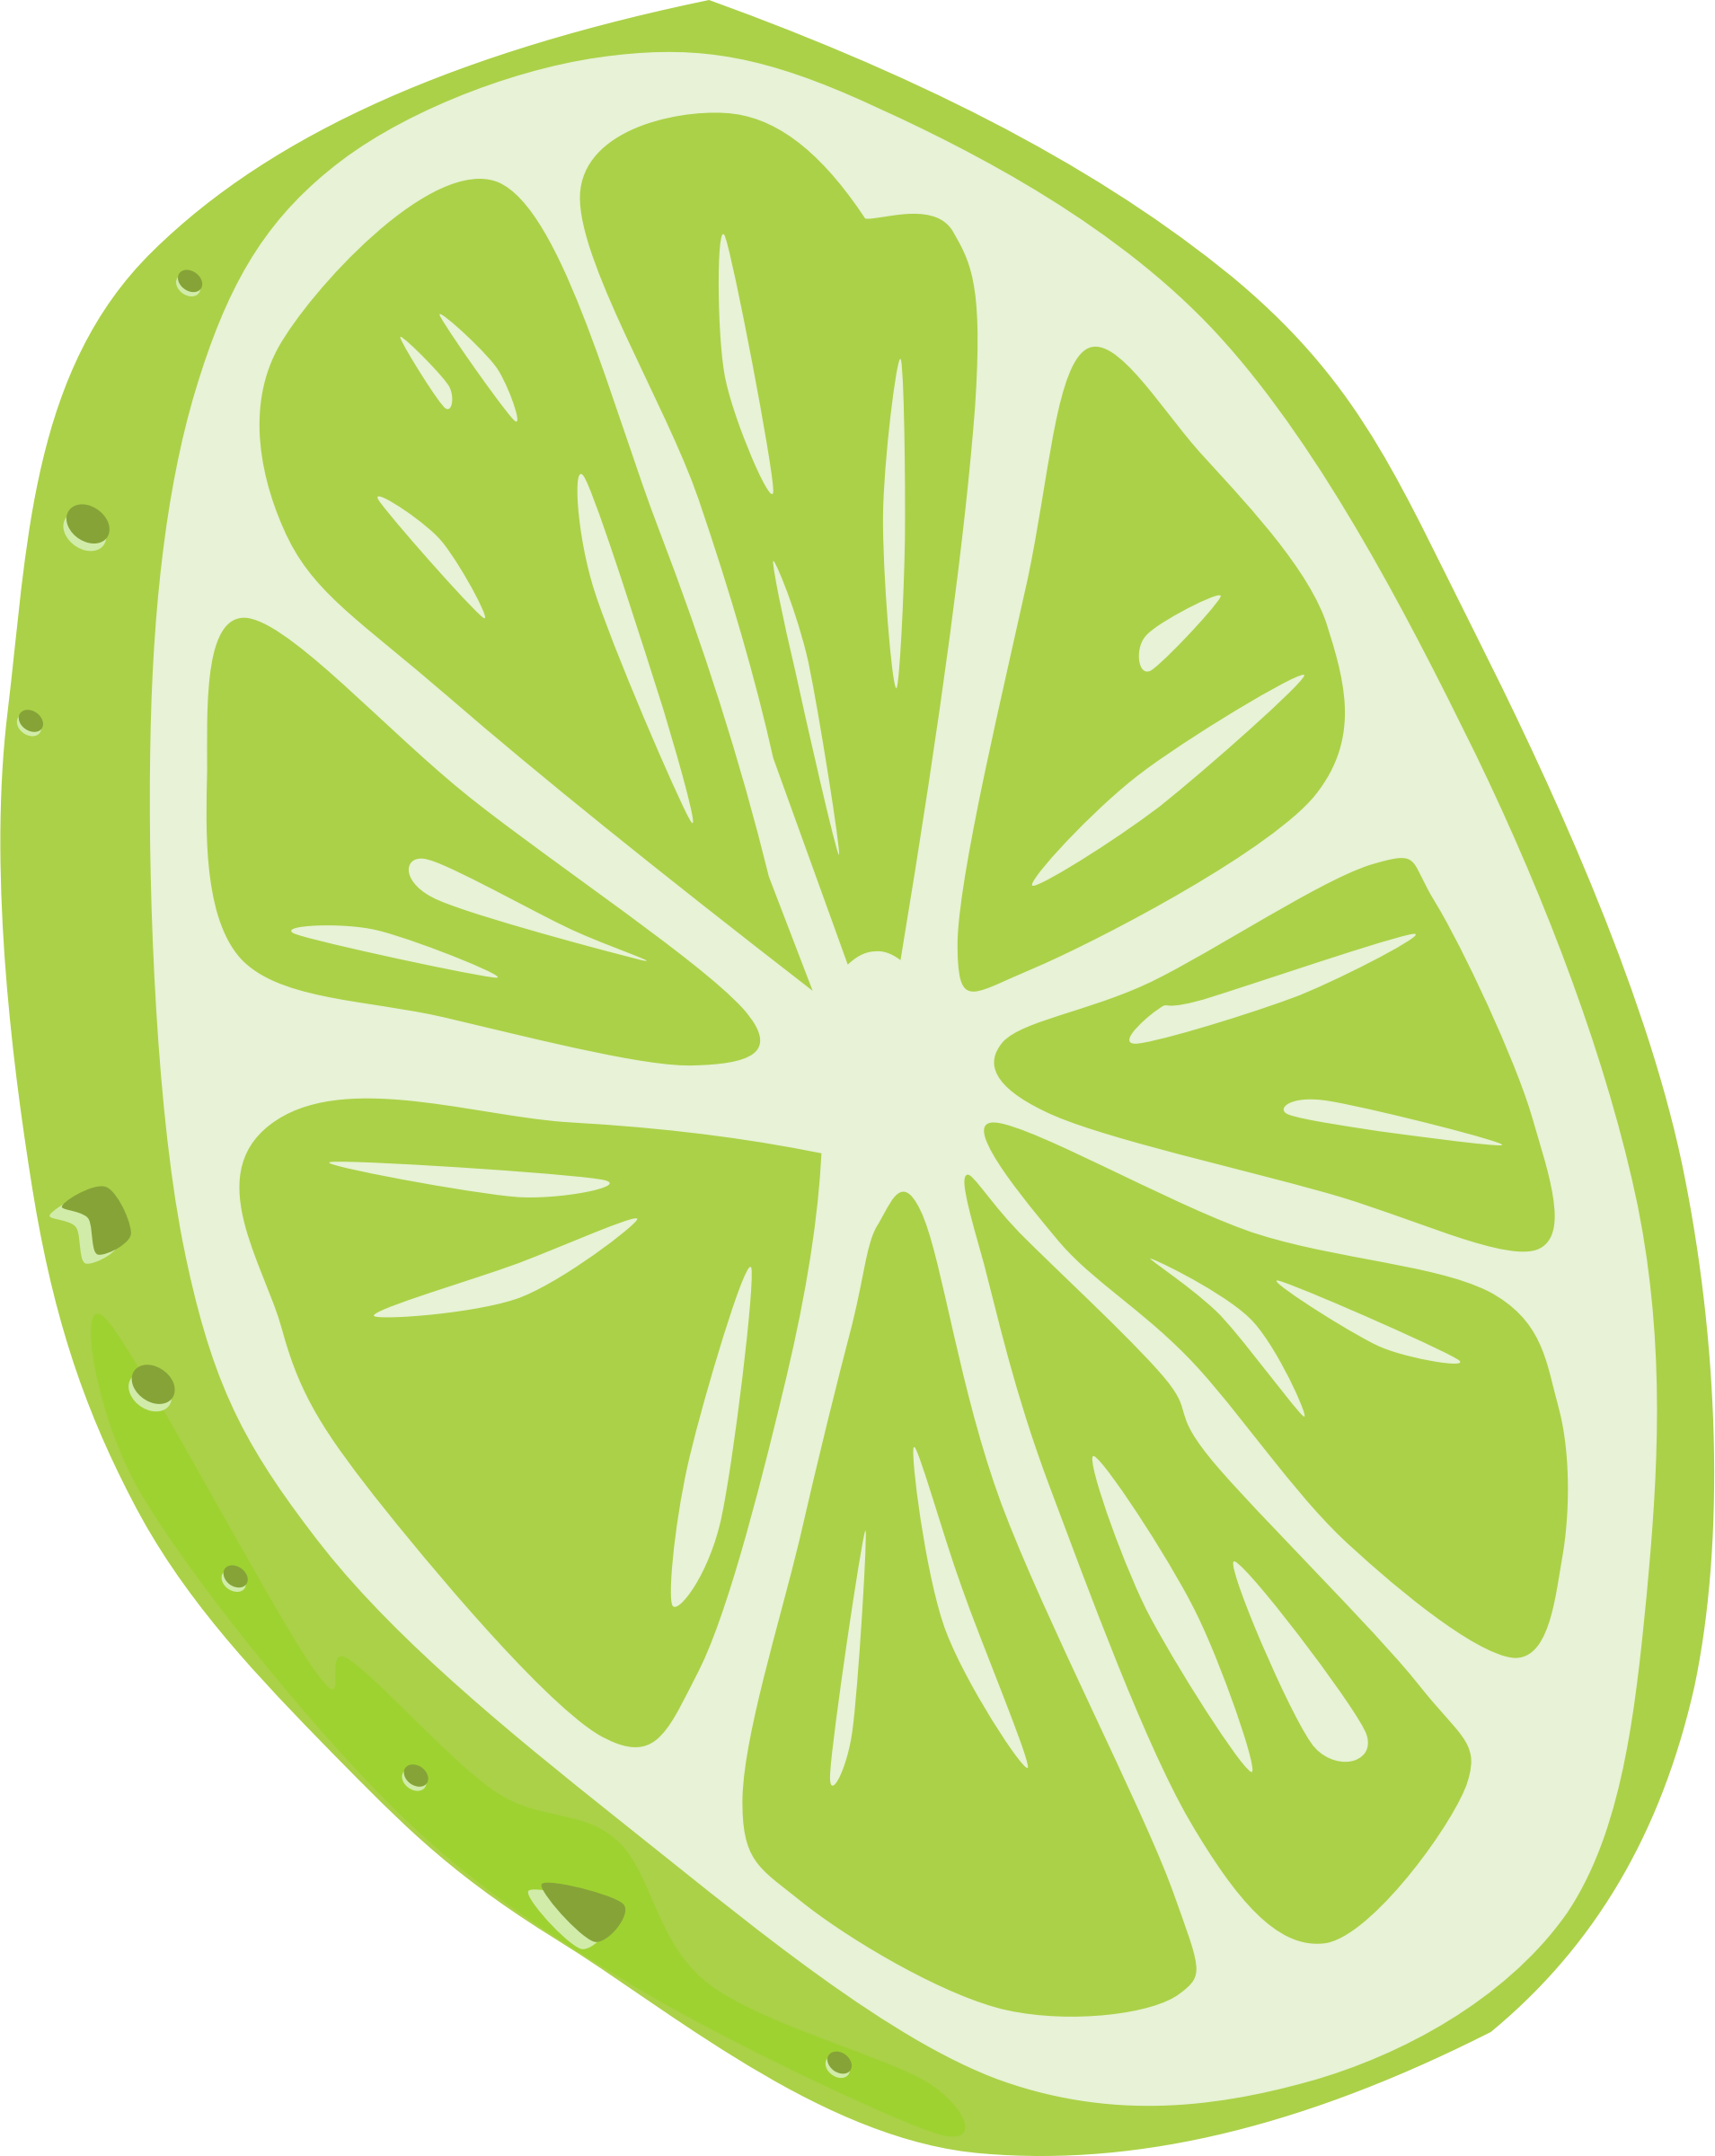 Lime clipart lime tree. Png images free download